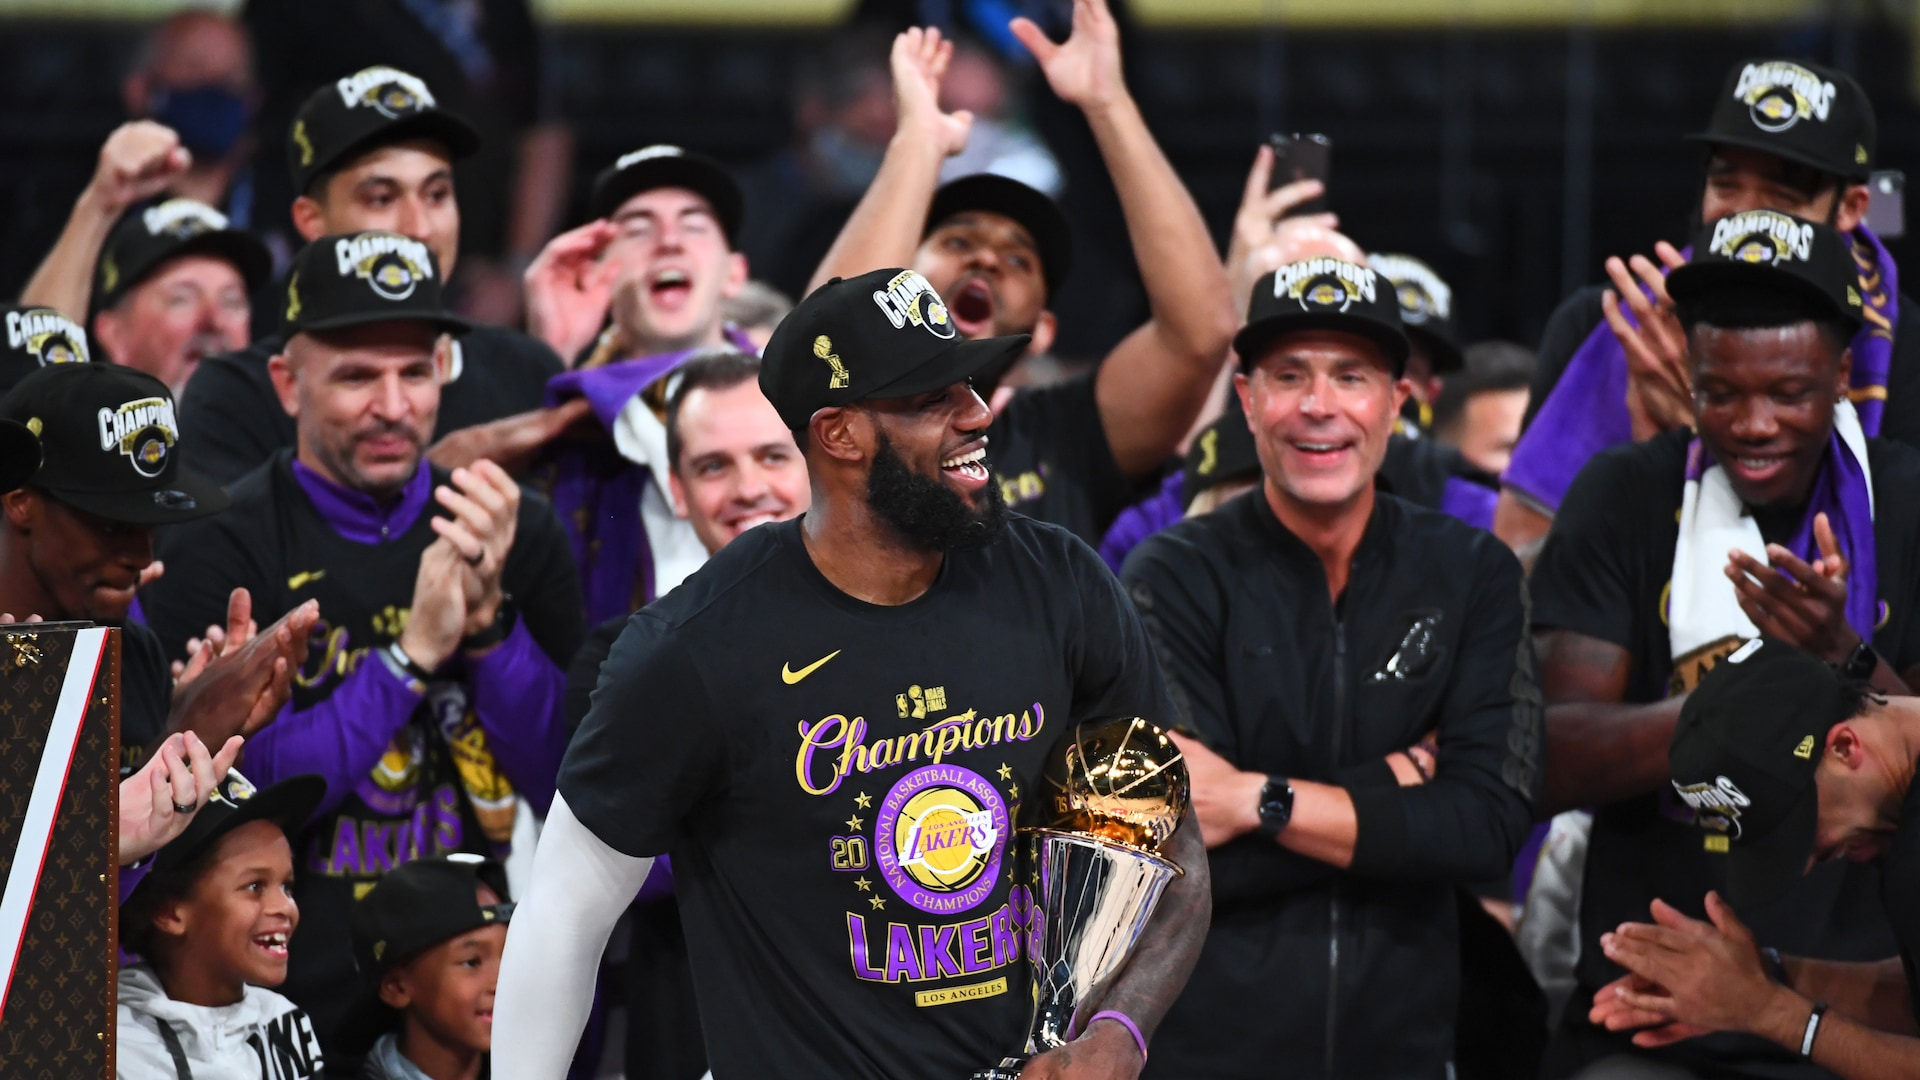 NBA Twitter reacts to Lakers' 17th championship